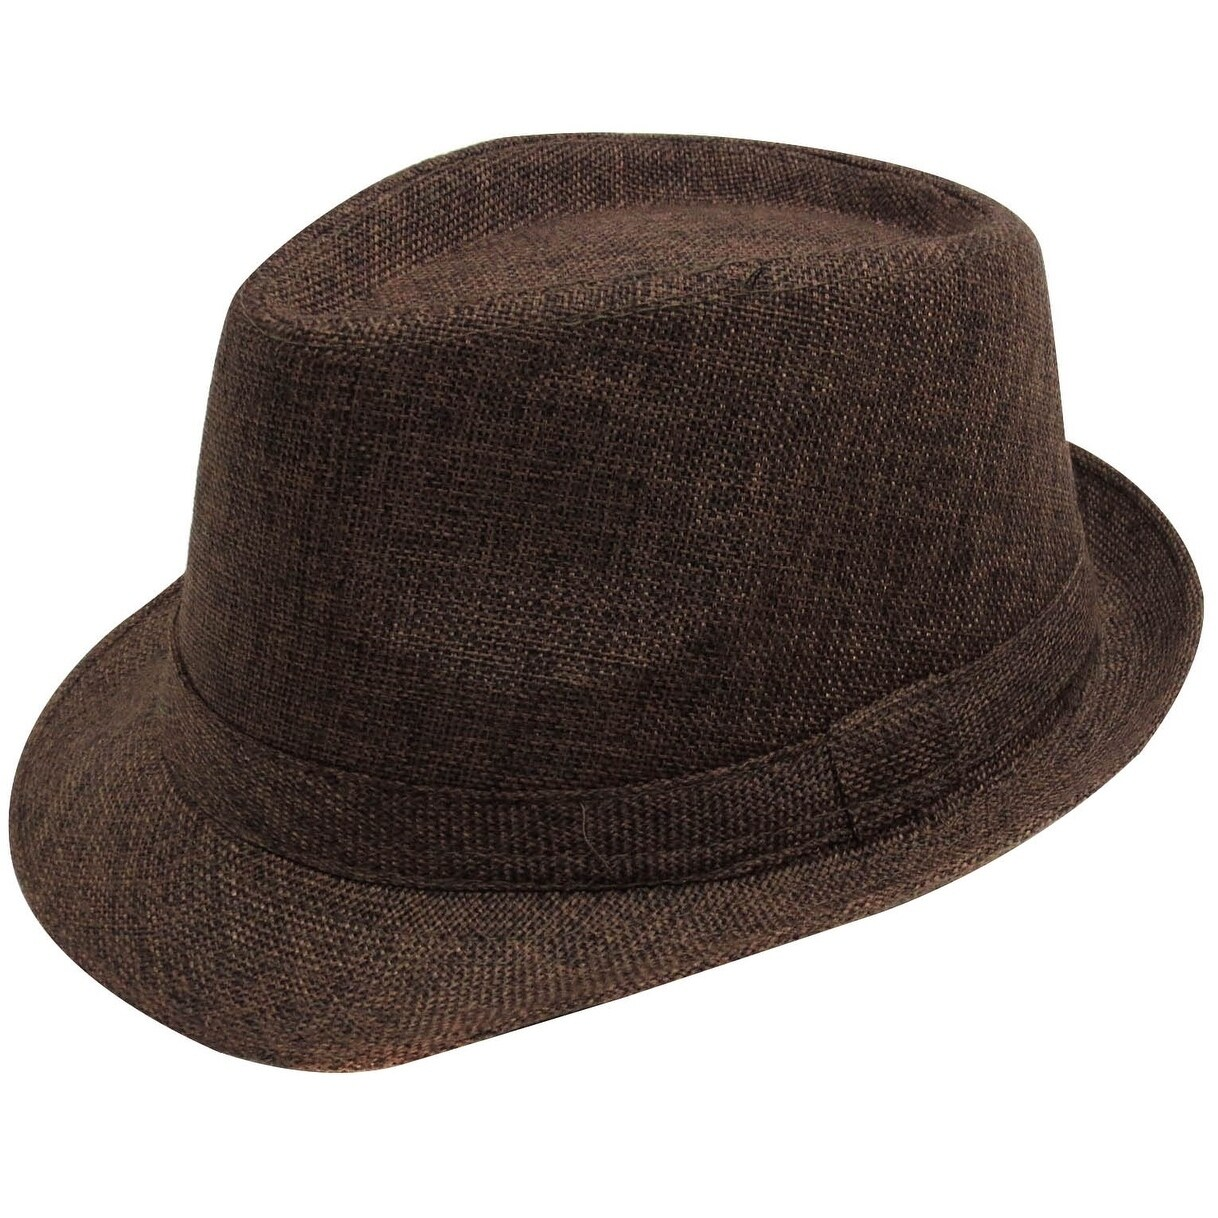 b46d9579d80 Shop Women Men Summer Gangster Trilby Straw Fedora Hat Cap W/ Brim, Black - Free  Shipping On Orders Over $45 - Overstock - 20658102